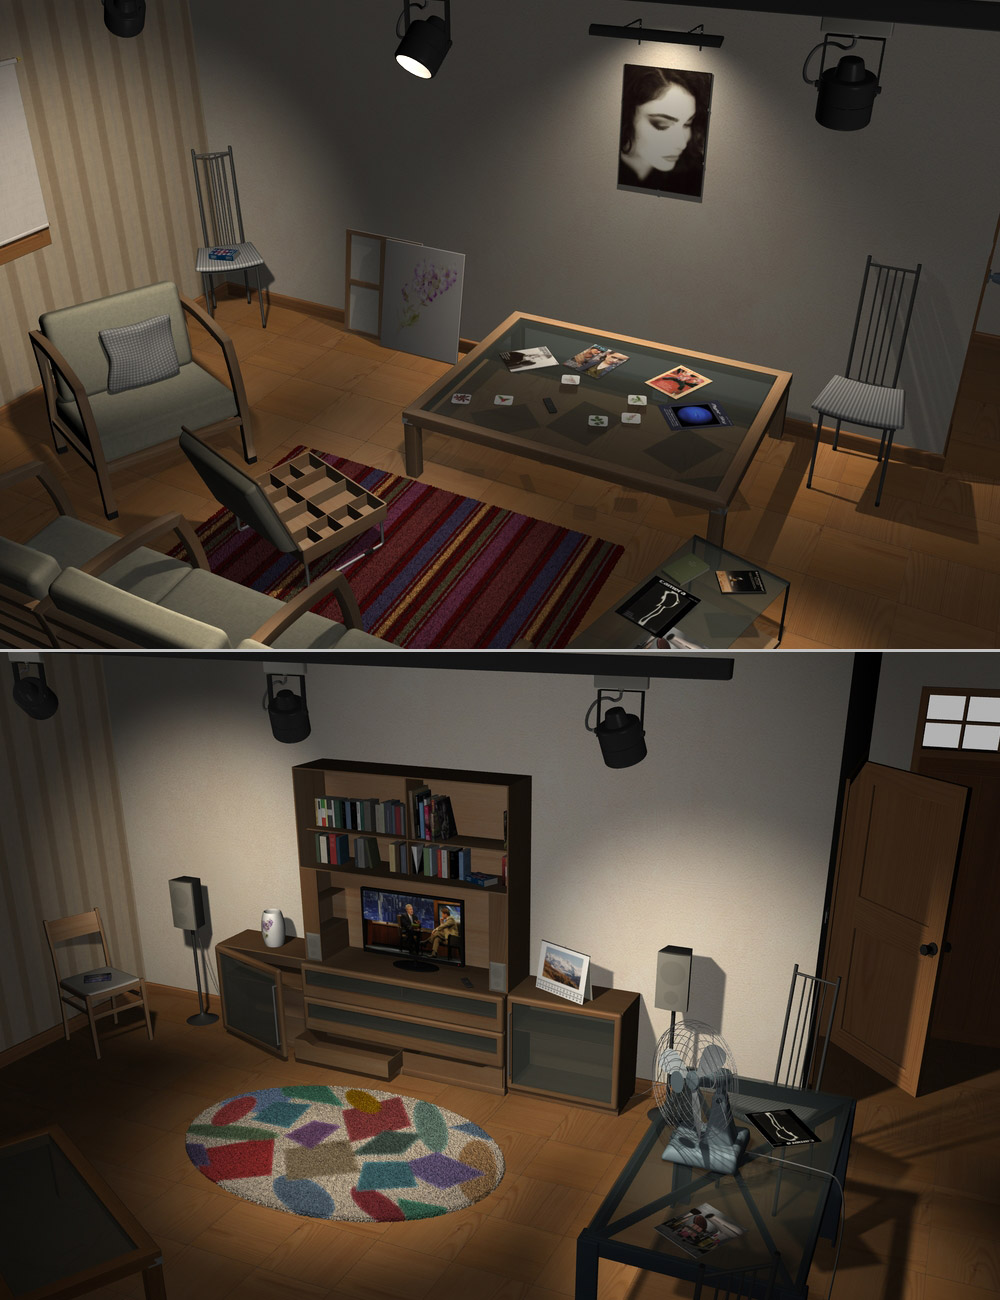 Home One Living-Room by: maclean, 3D Models by Daz 3D